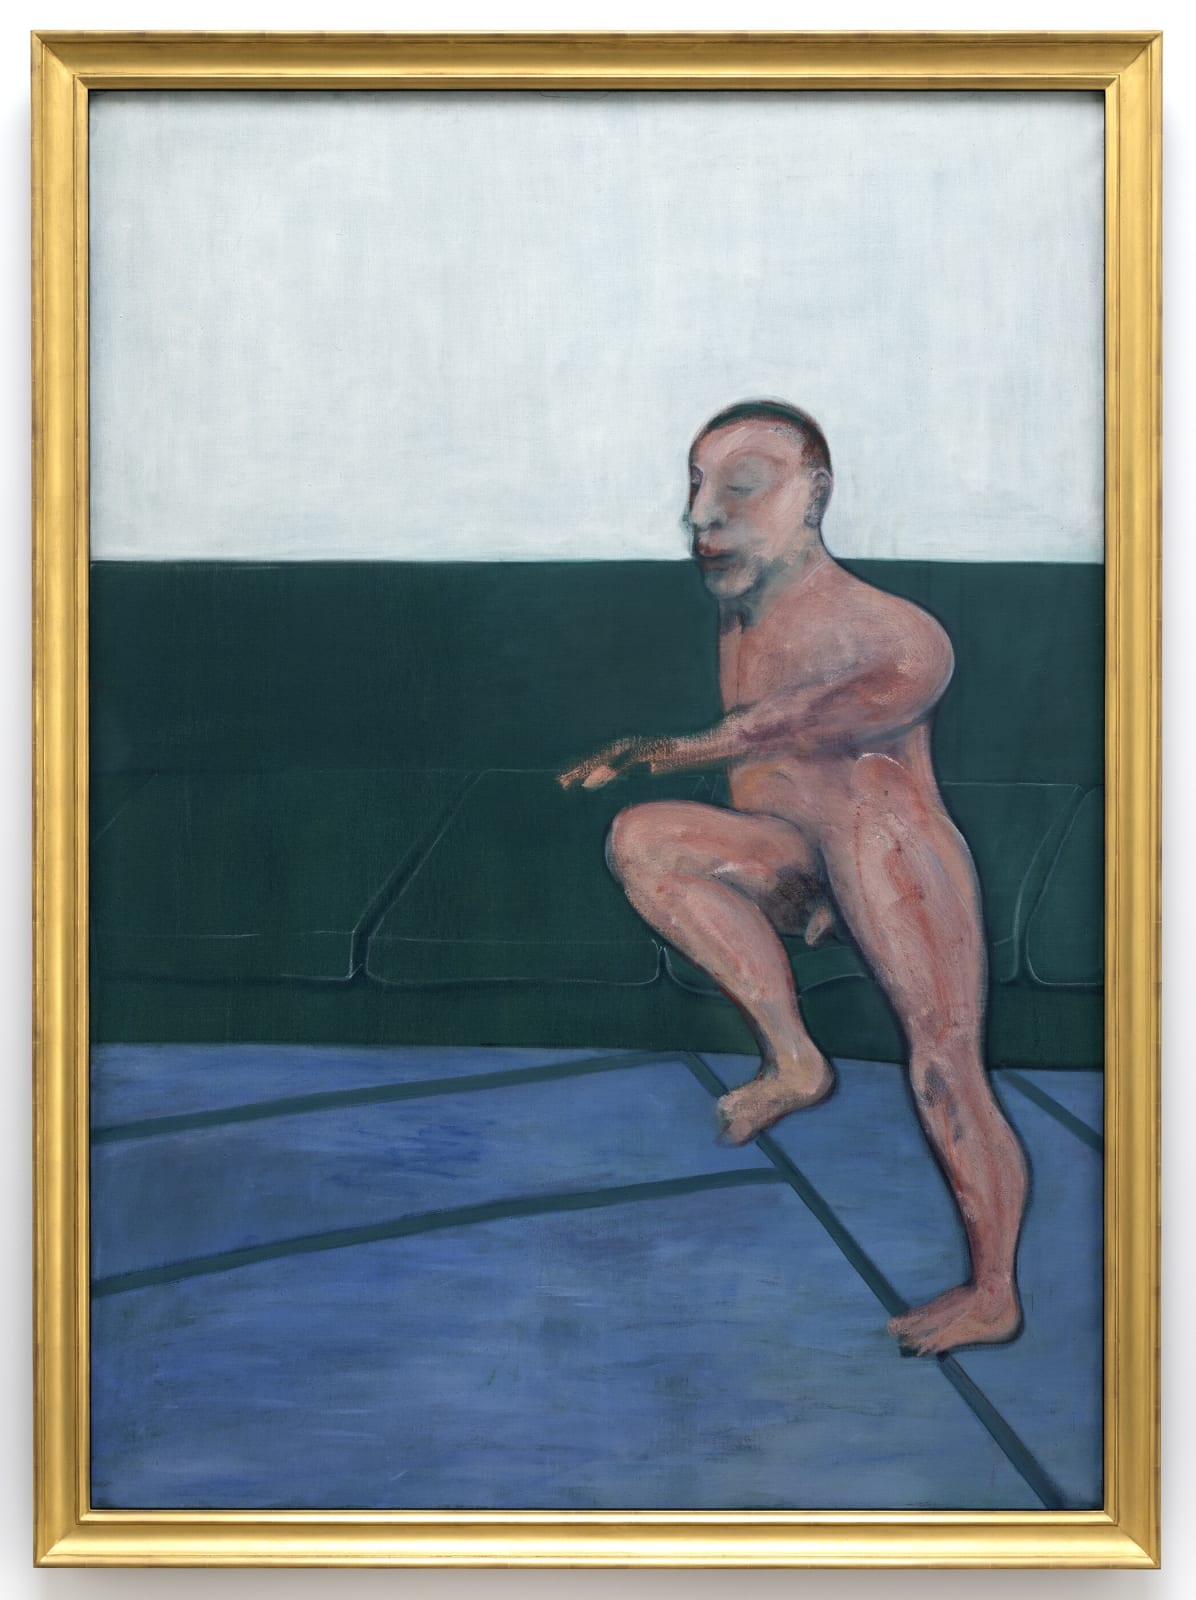 Francis Bacon Seated Figure on a Couch 1959 oil on canvas 77.95 x 55.71 inches 198 x 141.5 cm More Info